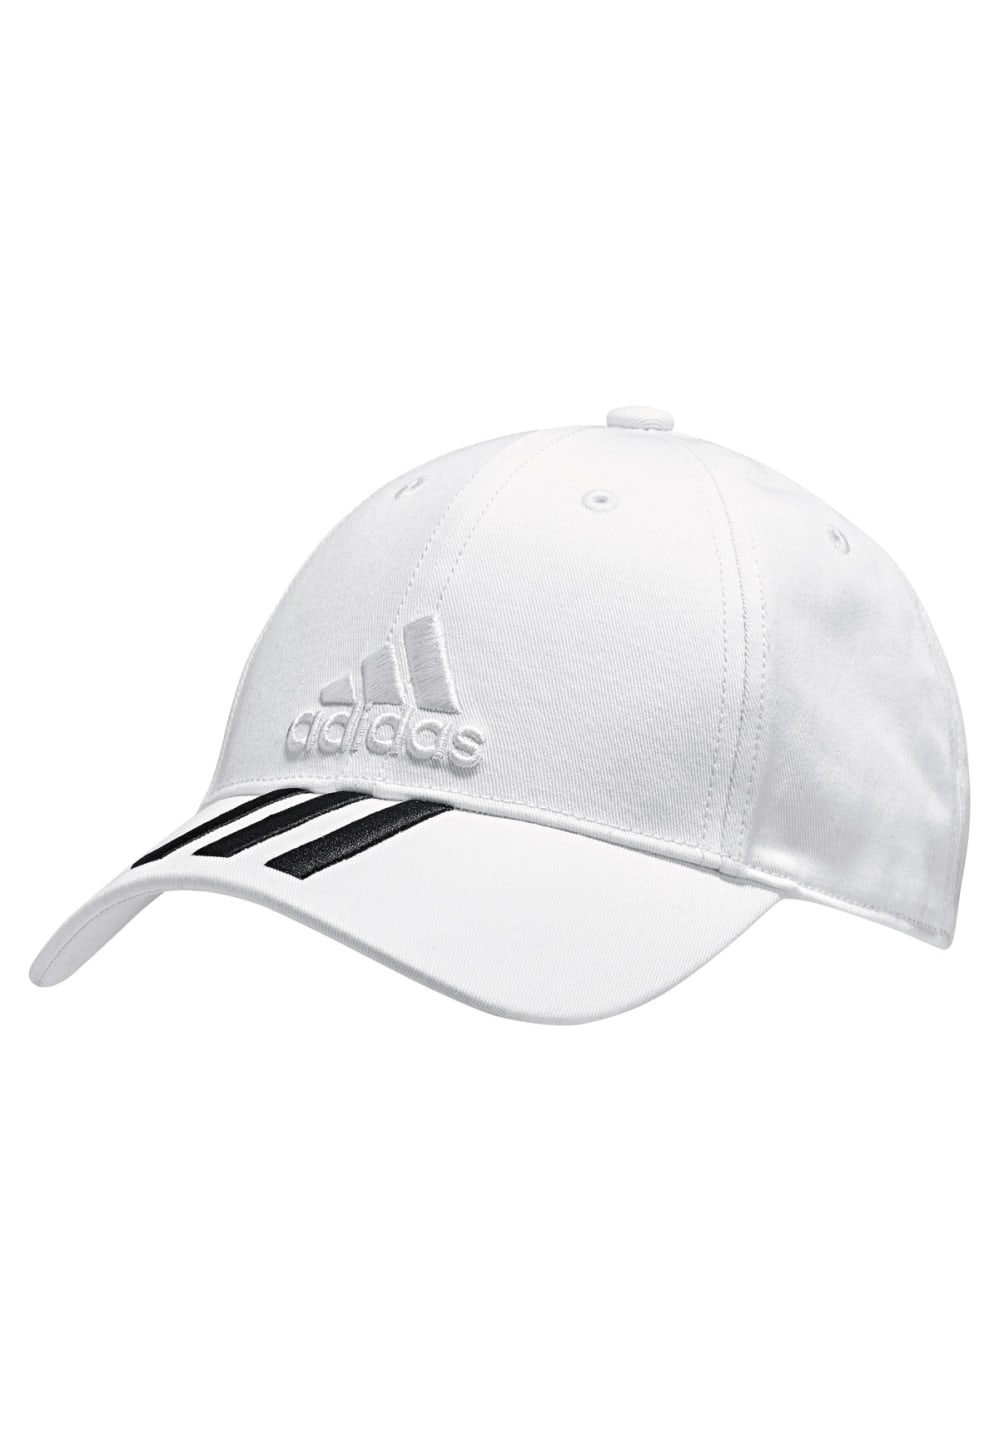 Next. -30%. This product is currently out of stock. adidas. 6 Panel Classic Cap  3 Stripes Cotton ... 58fb641ebf8e